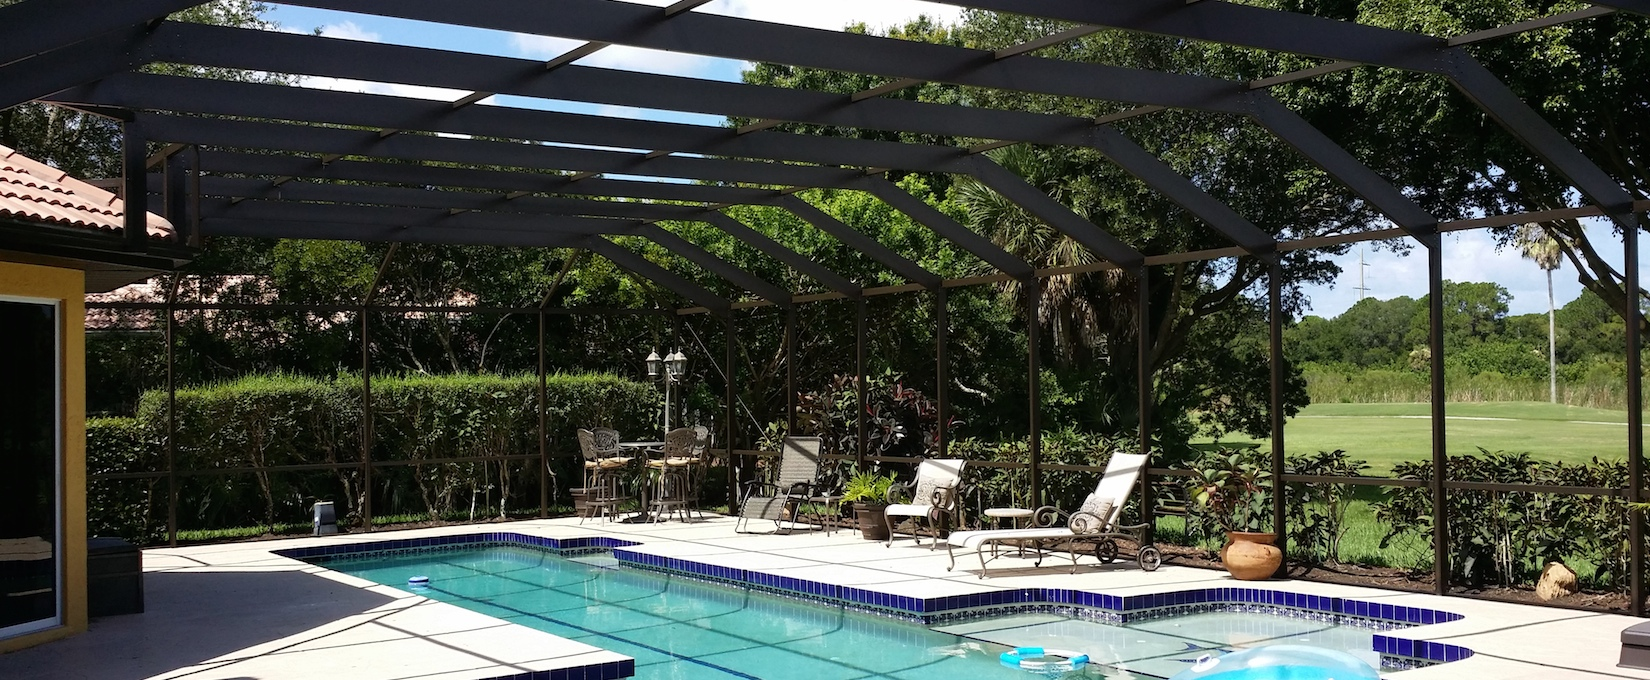 Pool-Screen-Enclosure-Restoration-Tampa-copy